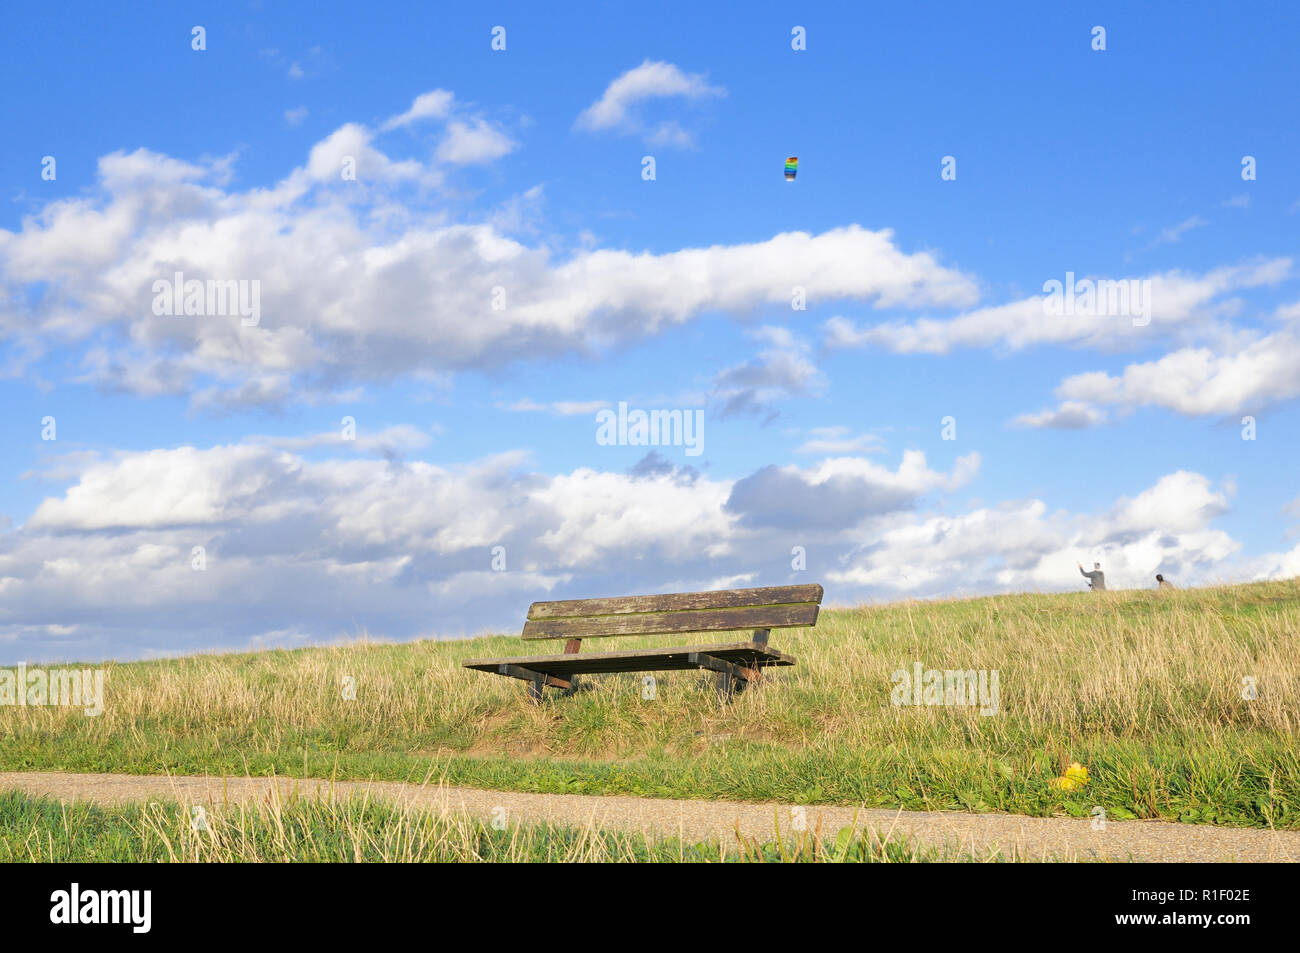 An empty wooden bench on Hampstead Heath with a colourful kite flying in the background - Stock Image